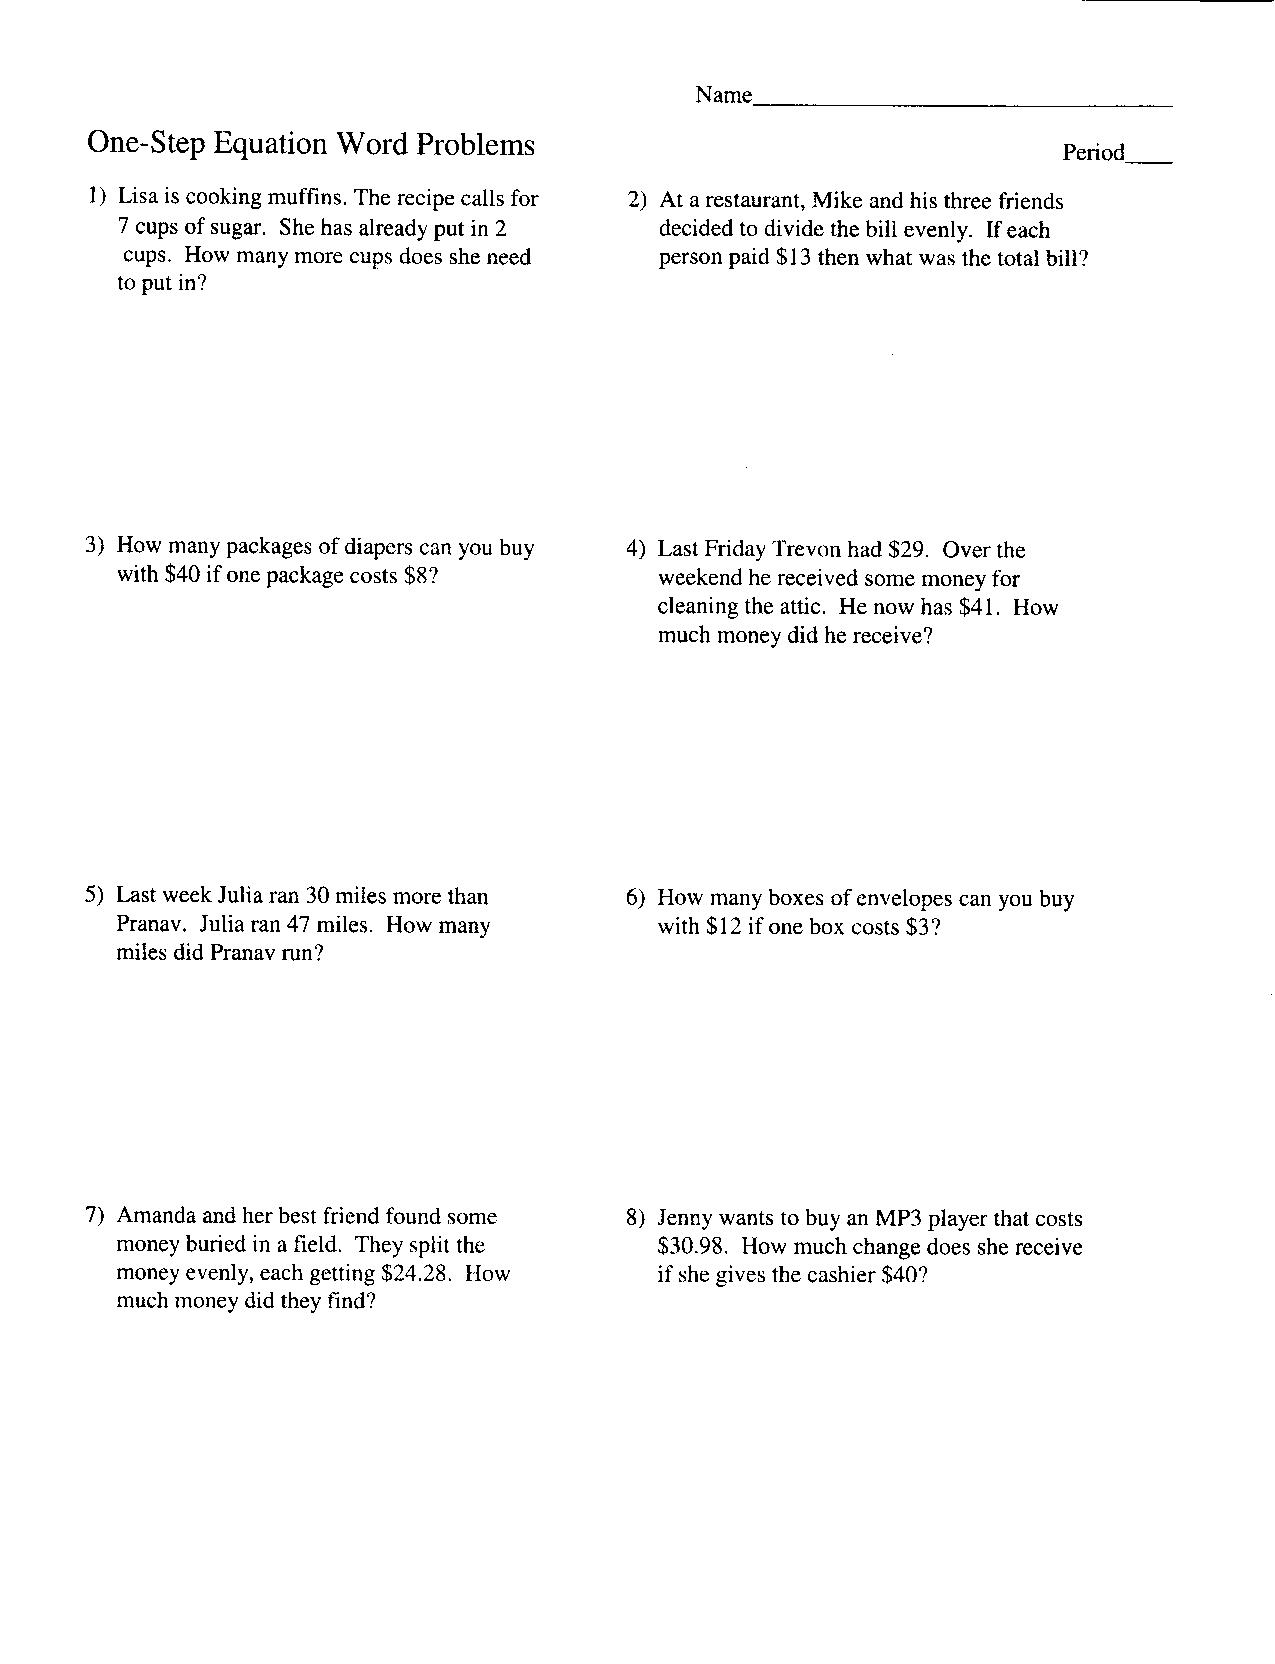 15 Best Images Of One Step Inequalities Worksheet Answers